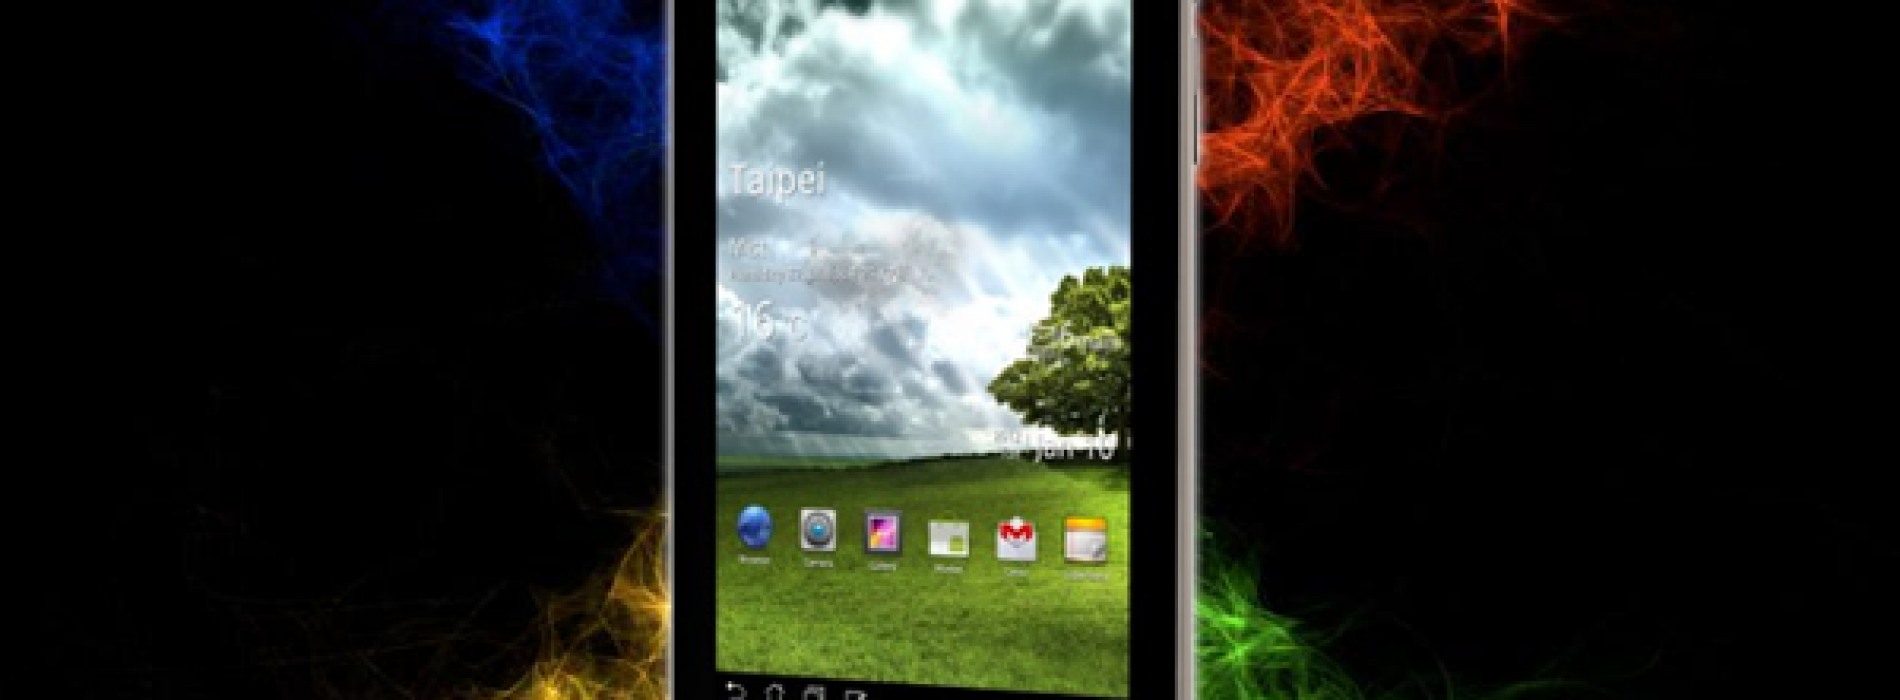 ASUS Nexus tablet benchmarks outed, featuring Jelly Bean